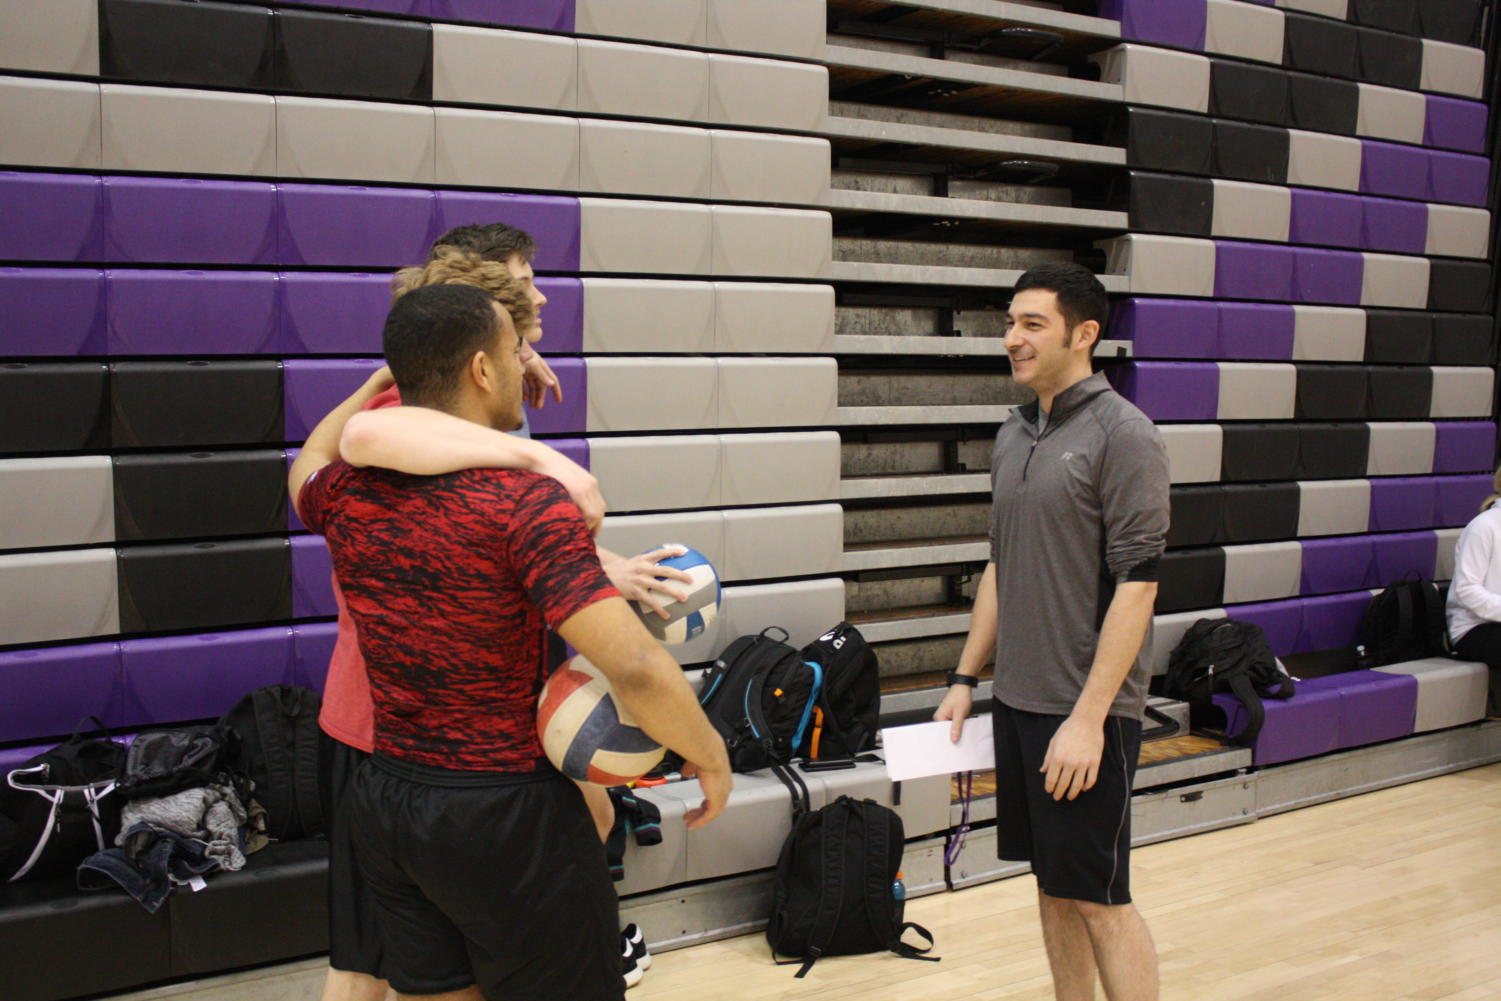 New Head coach Milan Yekich for boys volleyball talks to player during practice. Yekich takes over as head coach after the 22-year tenure of former Head Coach Eric Falcione.